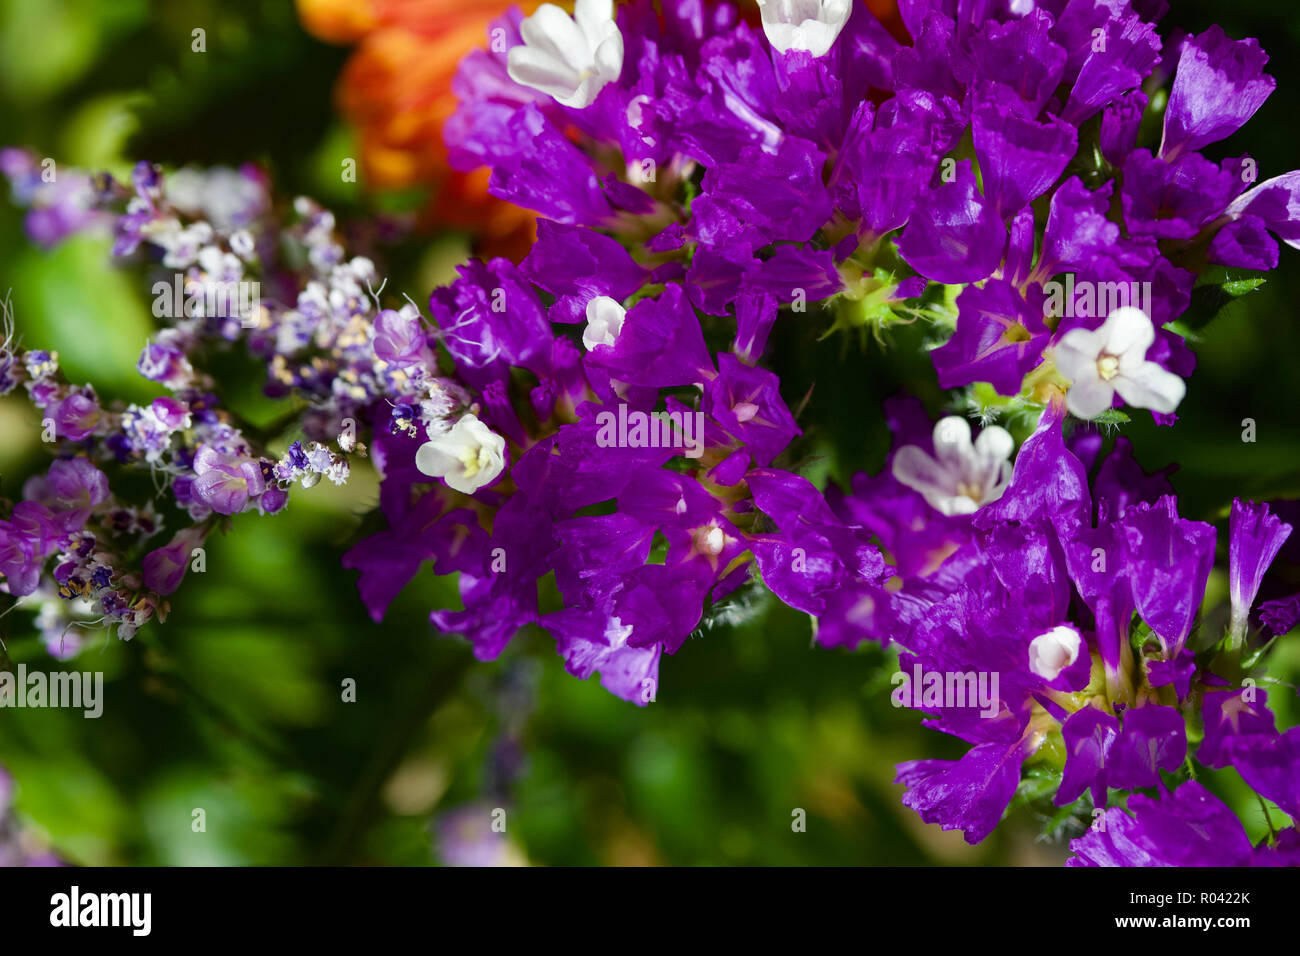 Macro view of beautiful purple and white statice flowers in an indoor arrangement - Stock Image